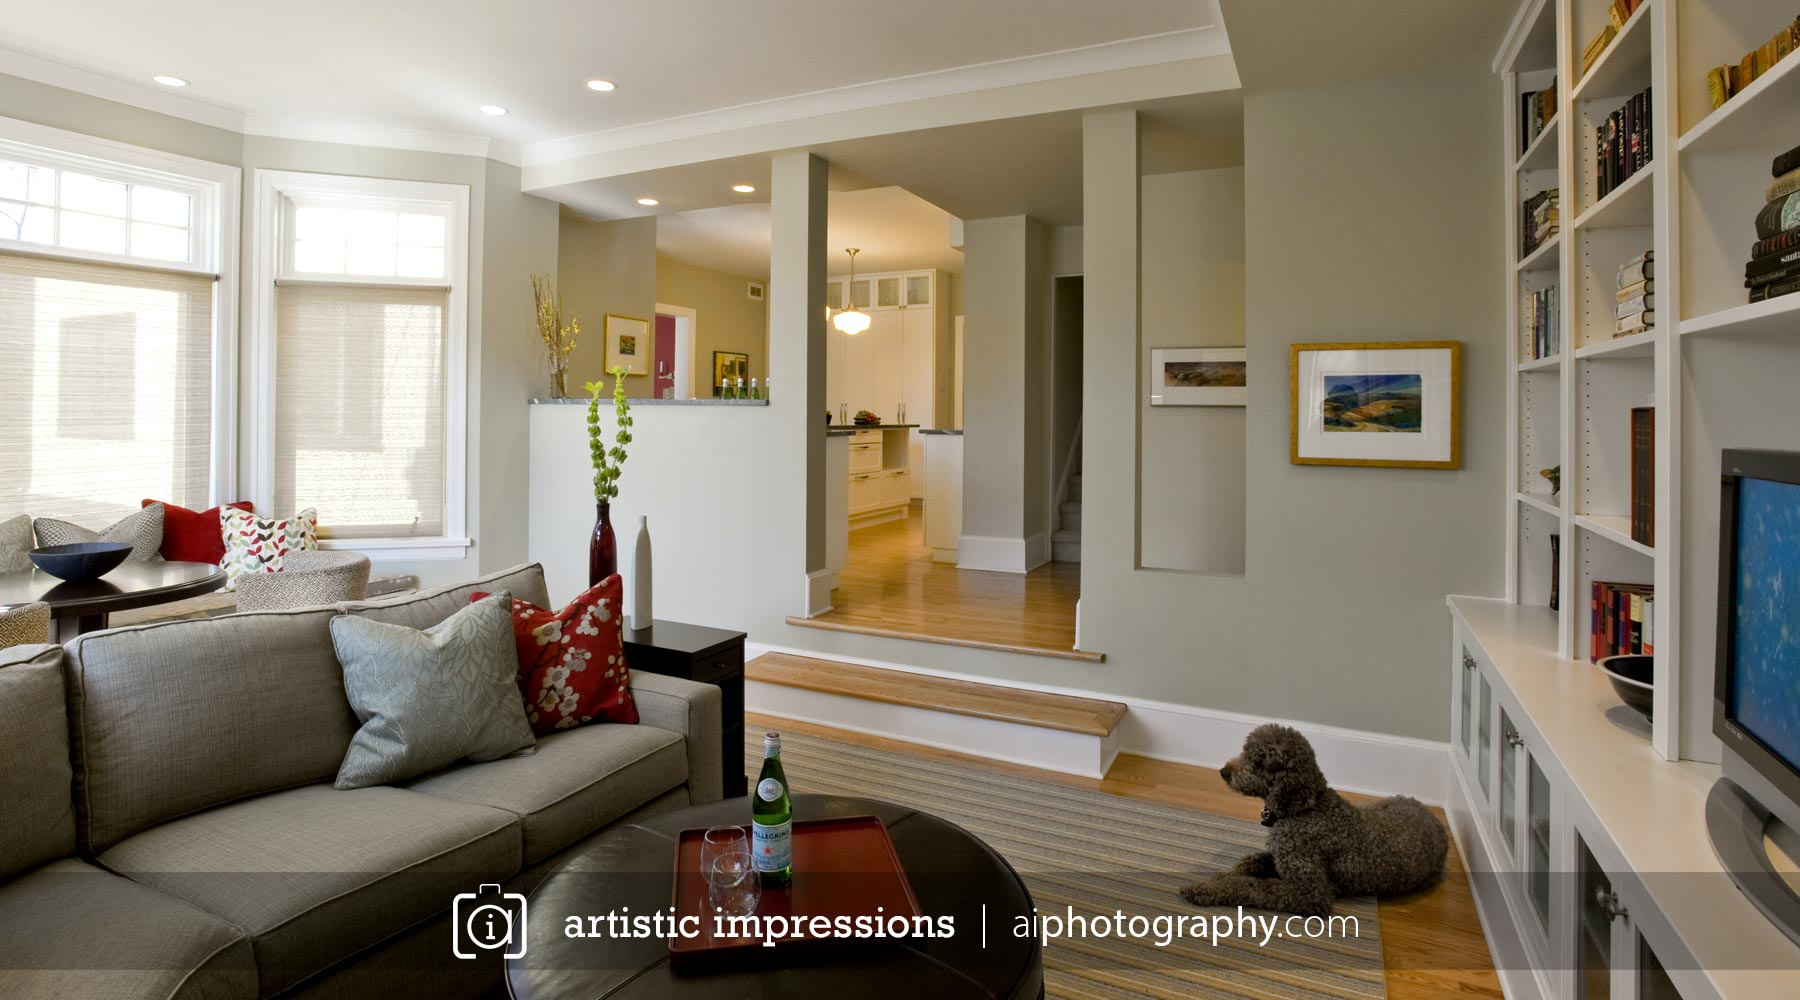 photographer-winnipeg-interior-advertising-residential-home ...